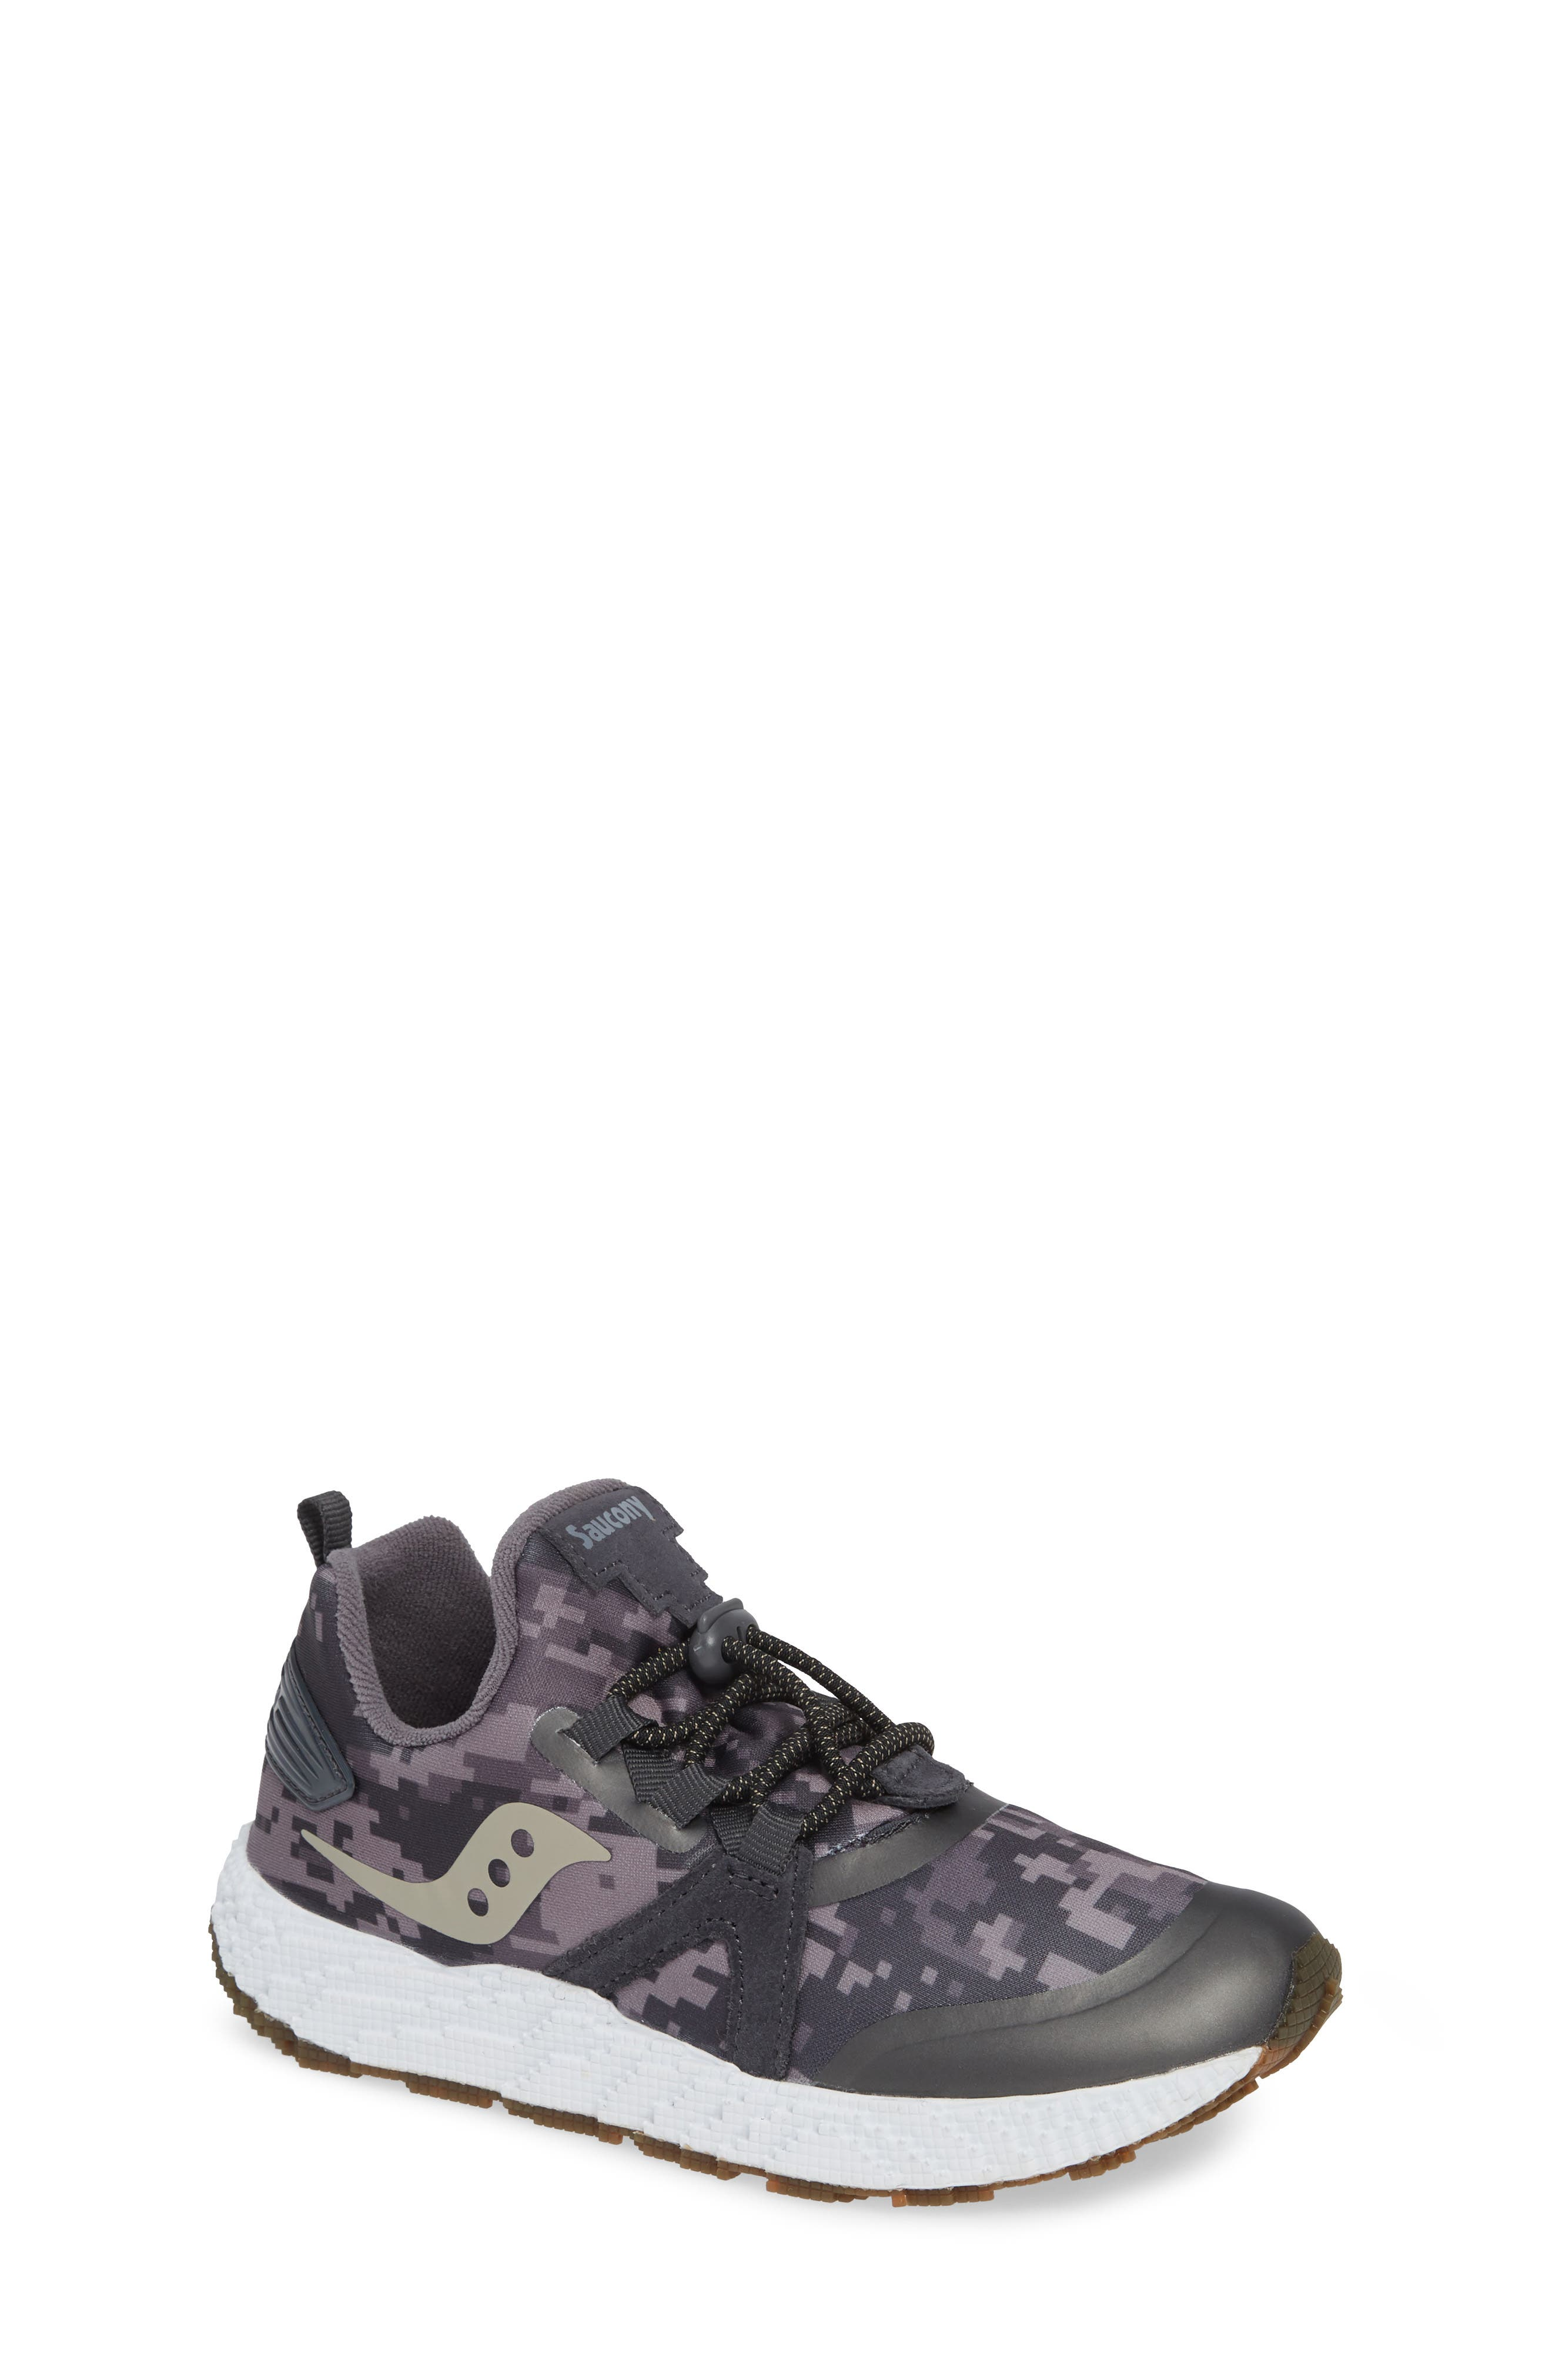 SAUCONY Voxel 9000 Sneaker, Main, color, GREY LEATHER/ MESH